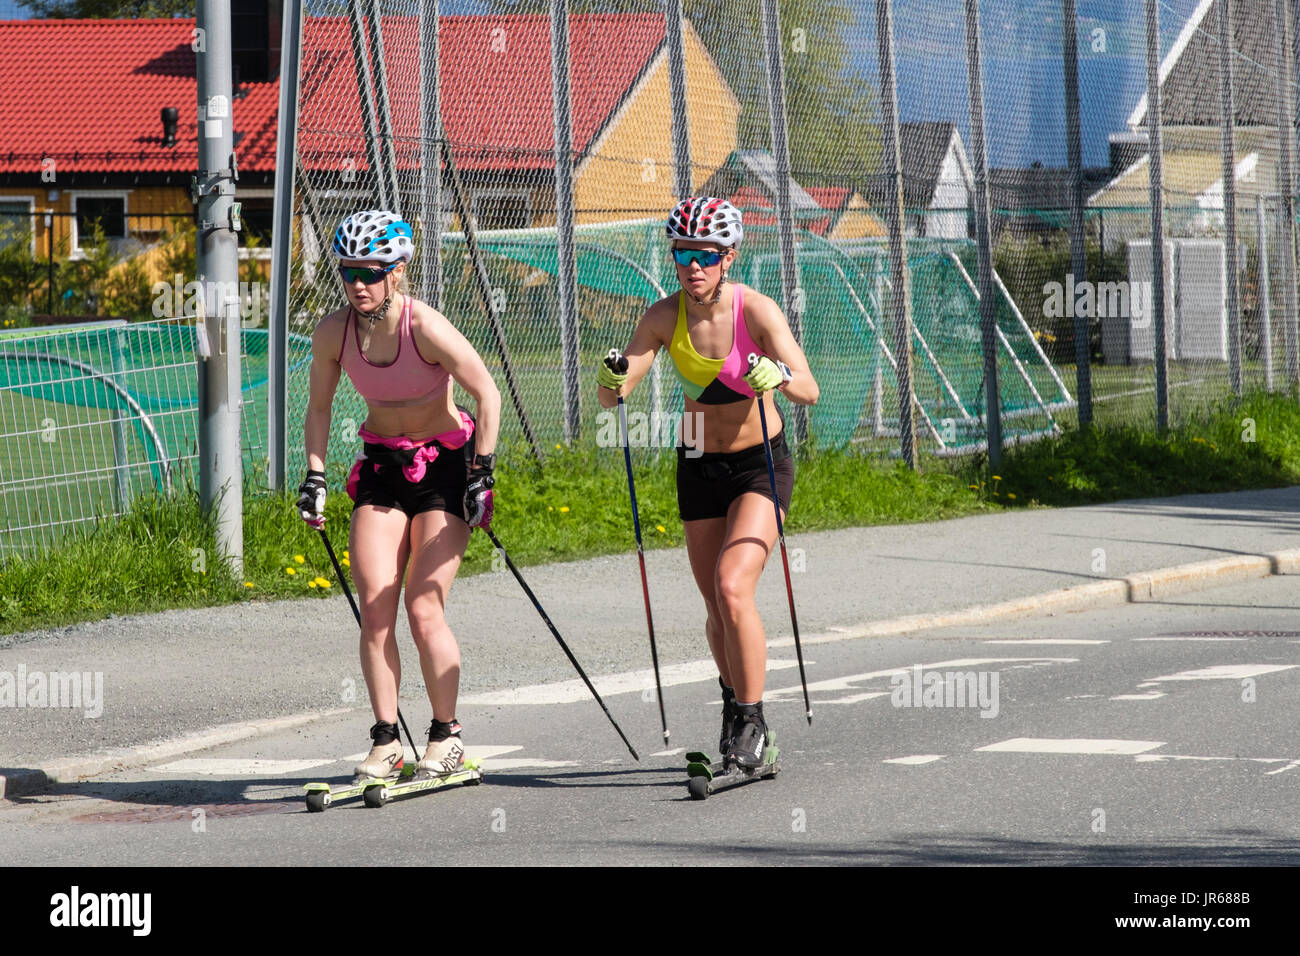 Two women on Nordic roller skis rollerskiing on a road in summer. Typical Norwegian active lifestyle. Trondheim, Sør-Trøndelag, Norway, Scandinavia - Stock Image